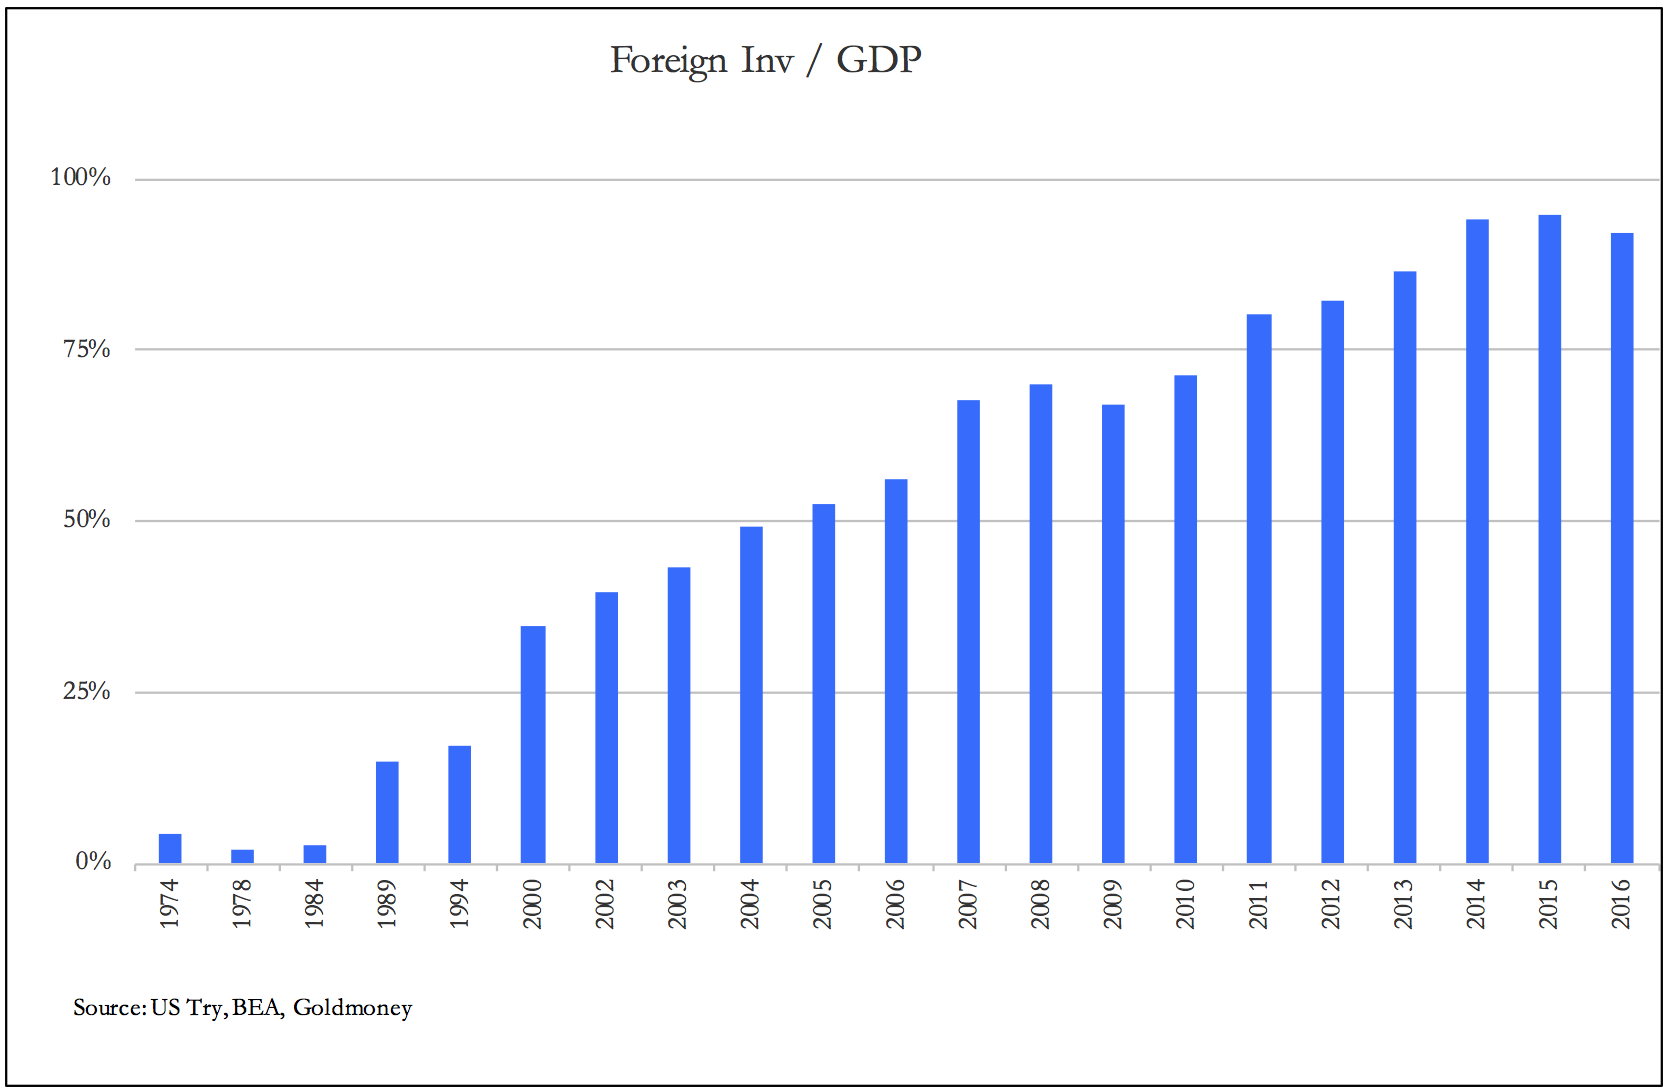 Forign invest gdp